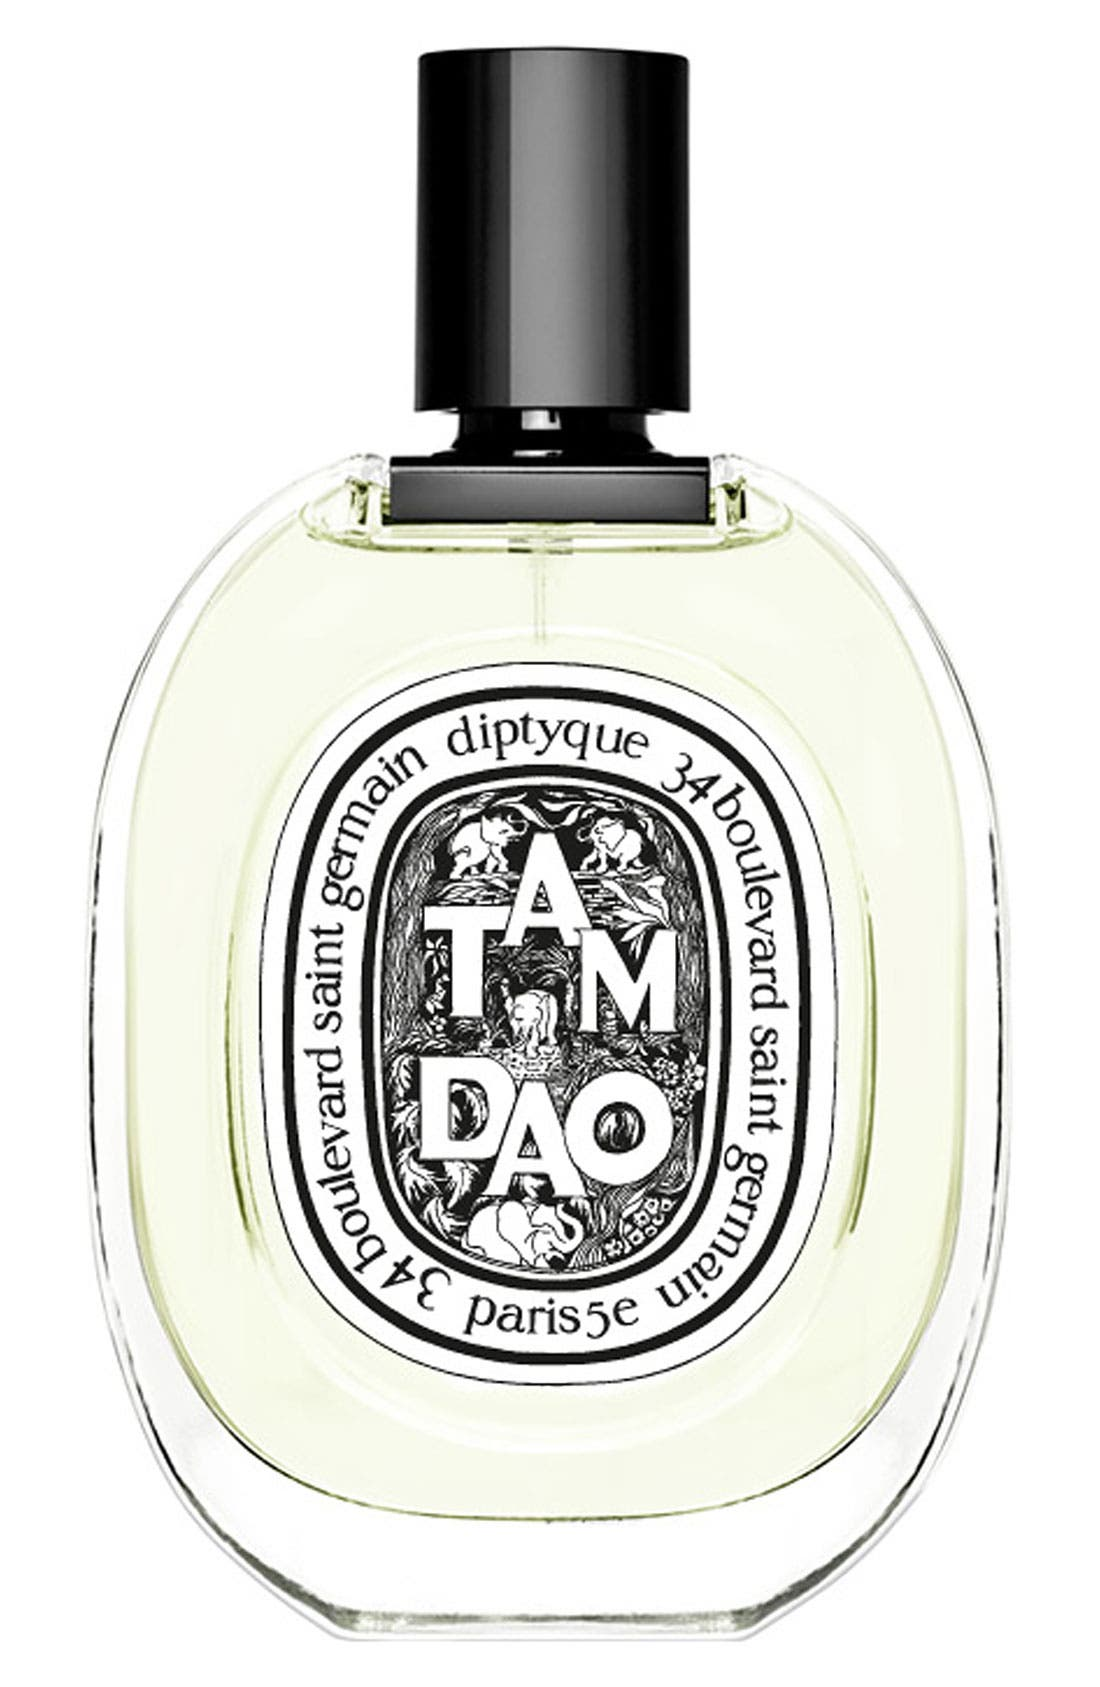 DIPTYQUE,                             Tam Dao Eau de Toilette,                             Main thumbnail 1, color,                             NO COLOR